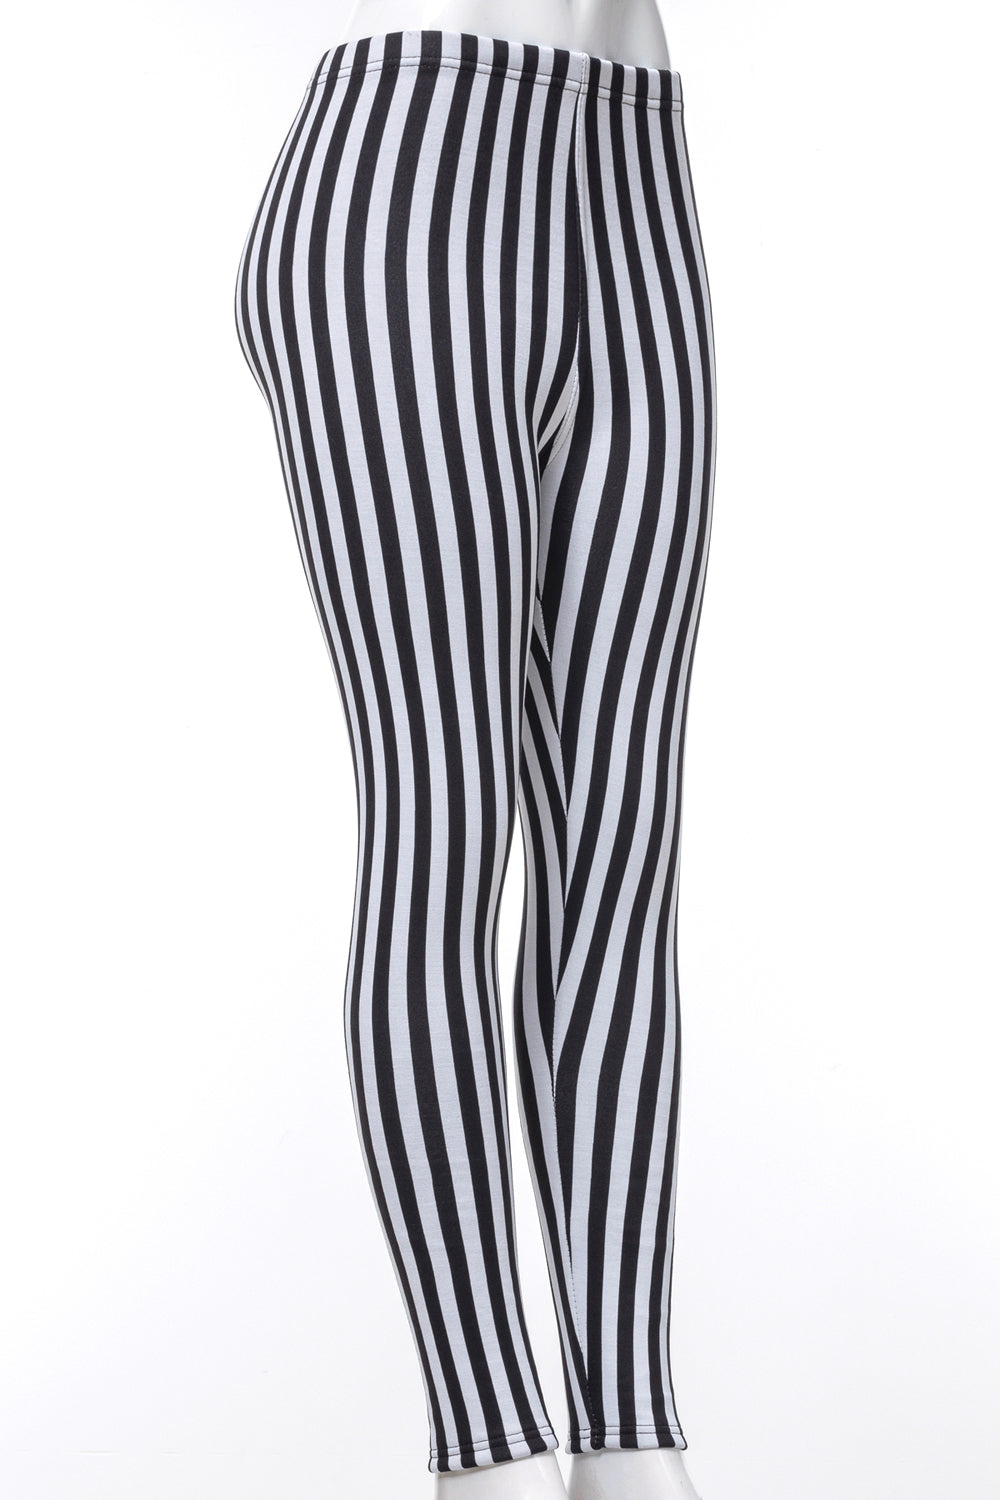 BeetleJuice - Fur Lined Leggings